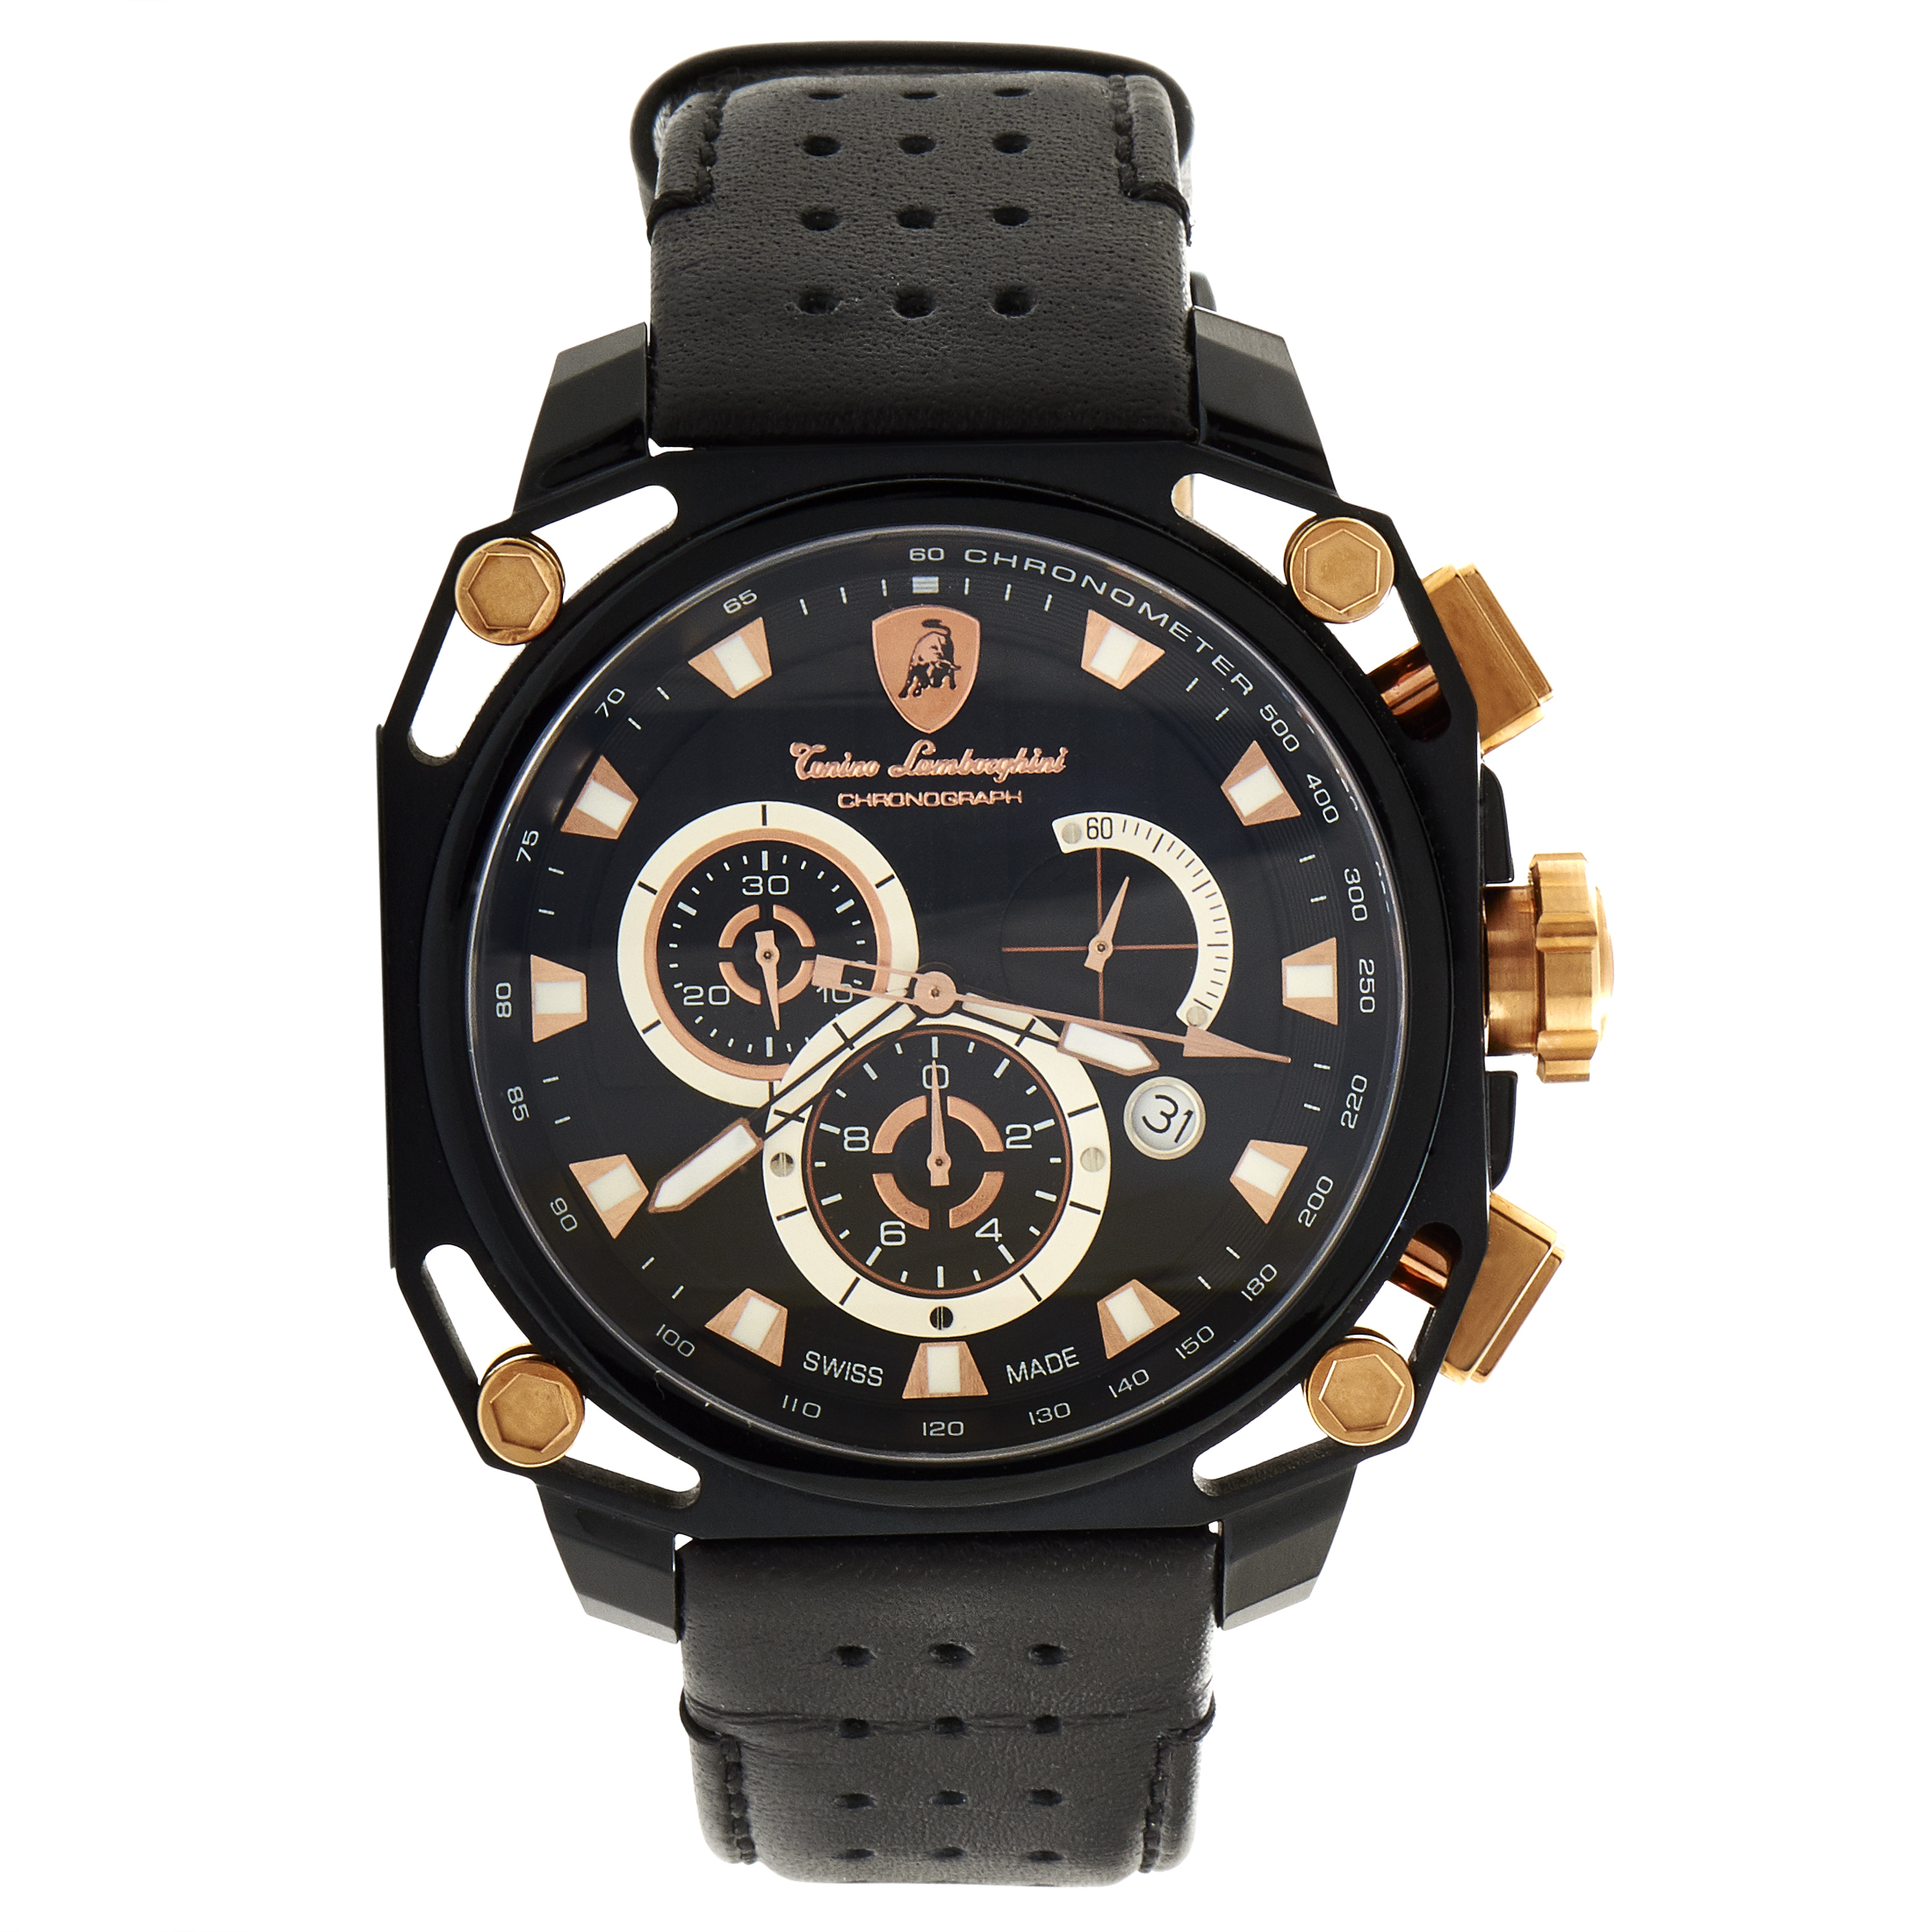 Men's 4 Screws Quartz Chronograph Watch 4850